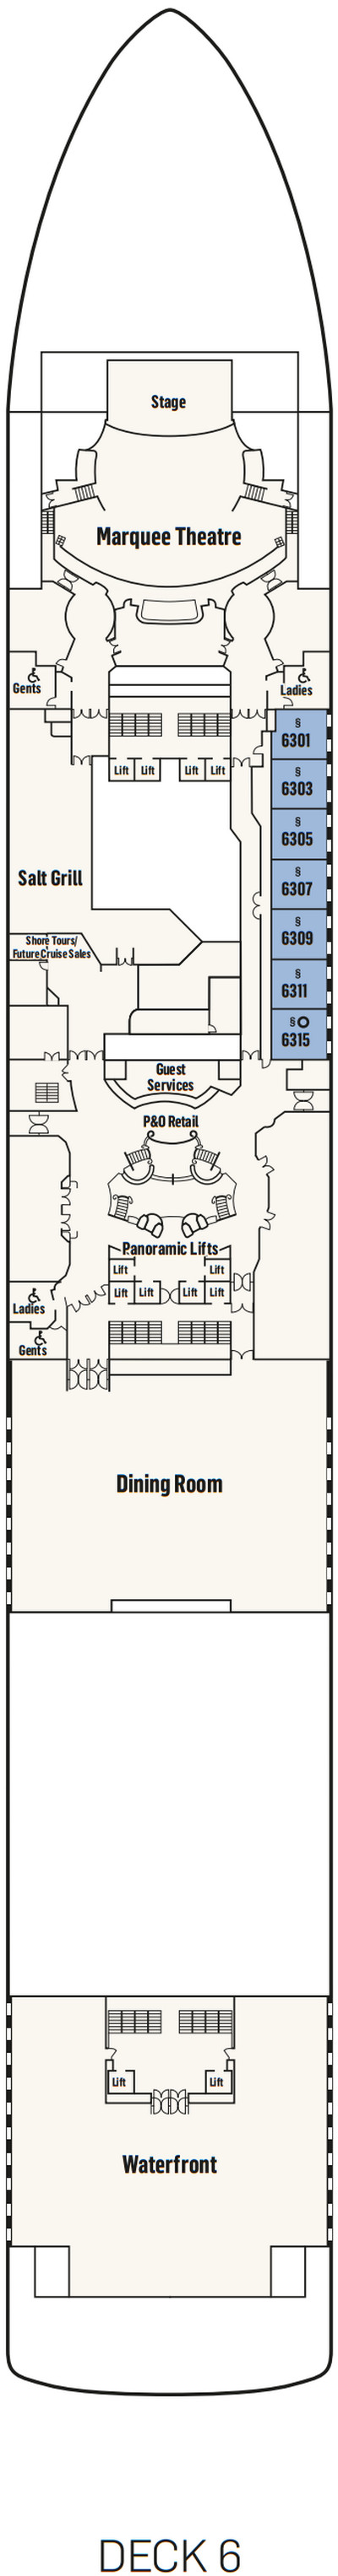 P&O - Pacific Adventure Deck 6 layout